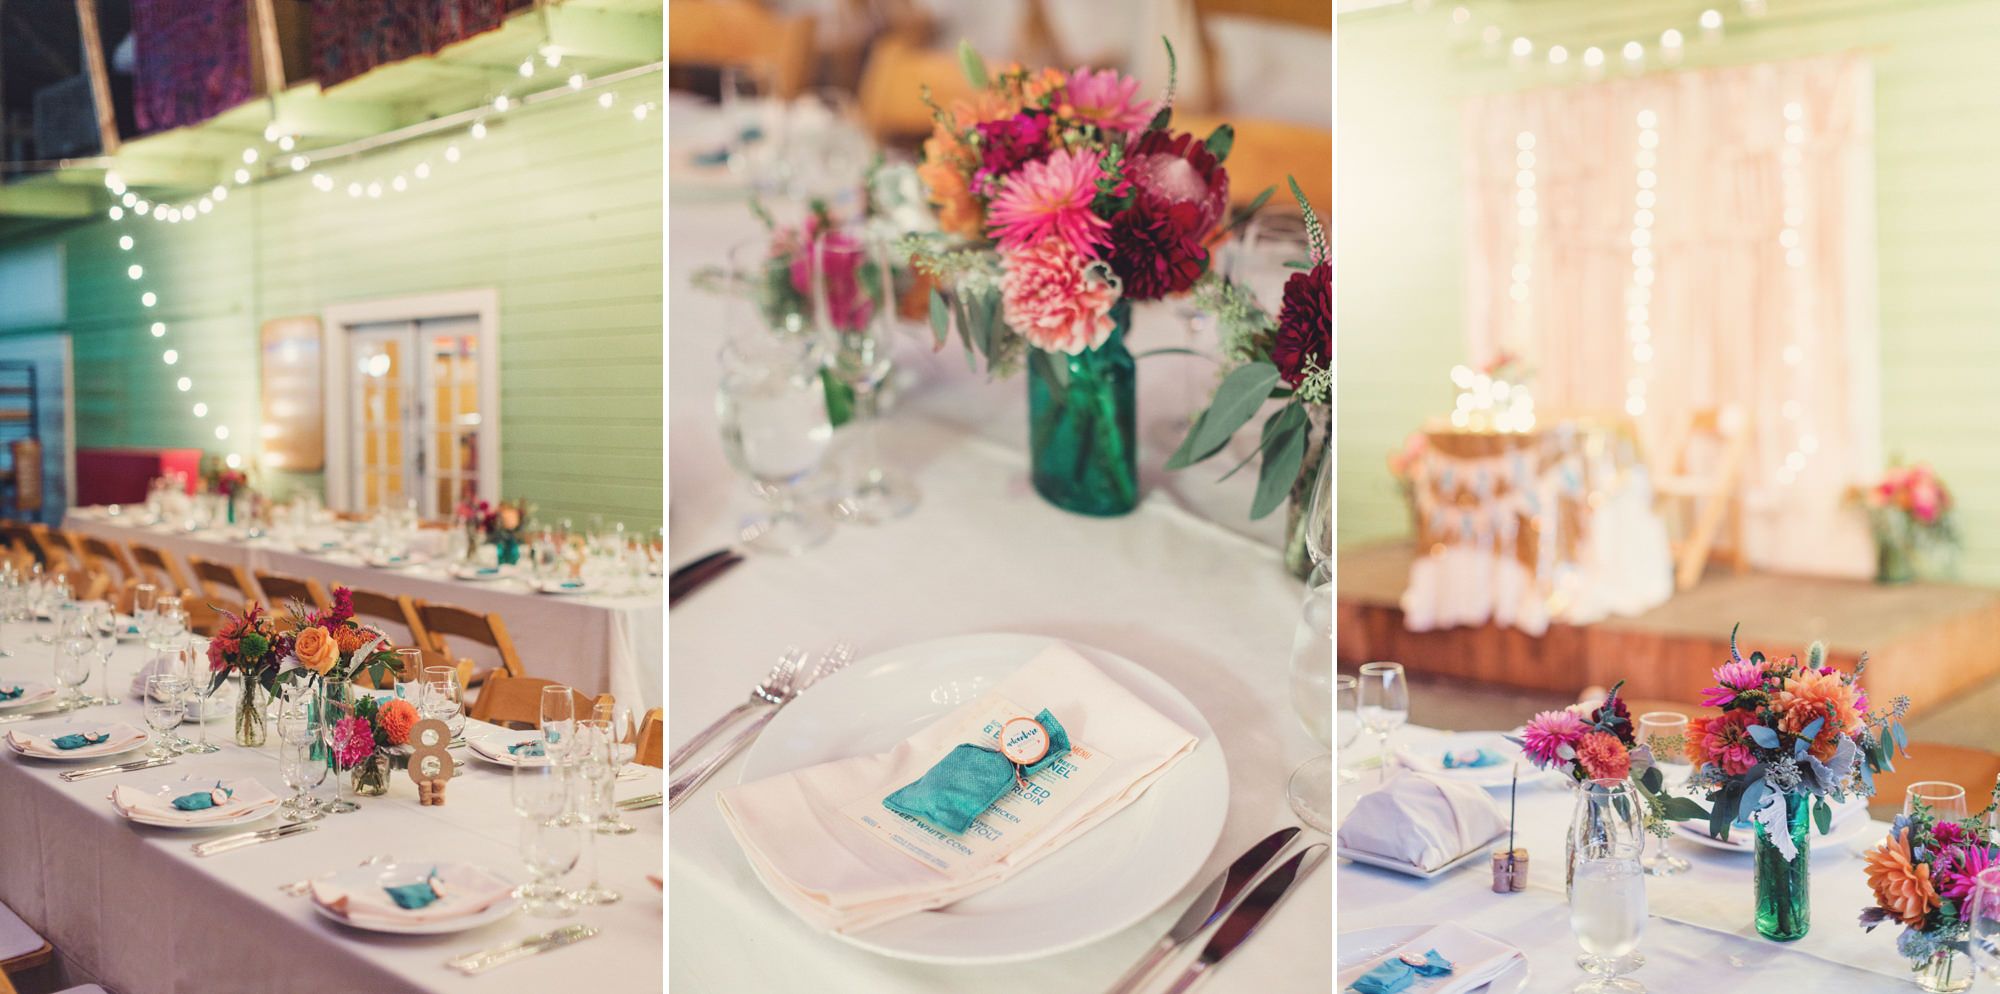 Toby's Feed Barn Wedding ©Anne-Claire Brun 117